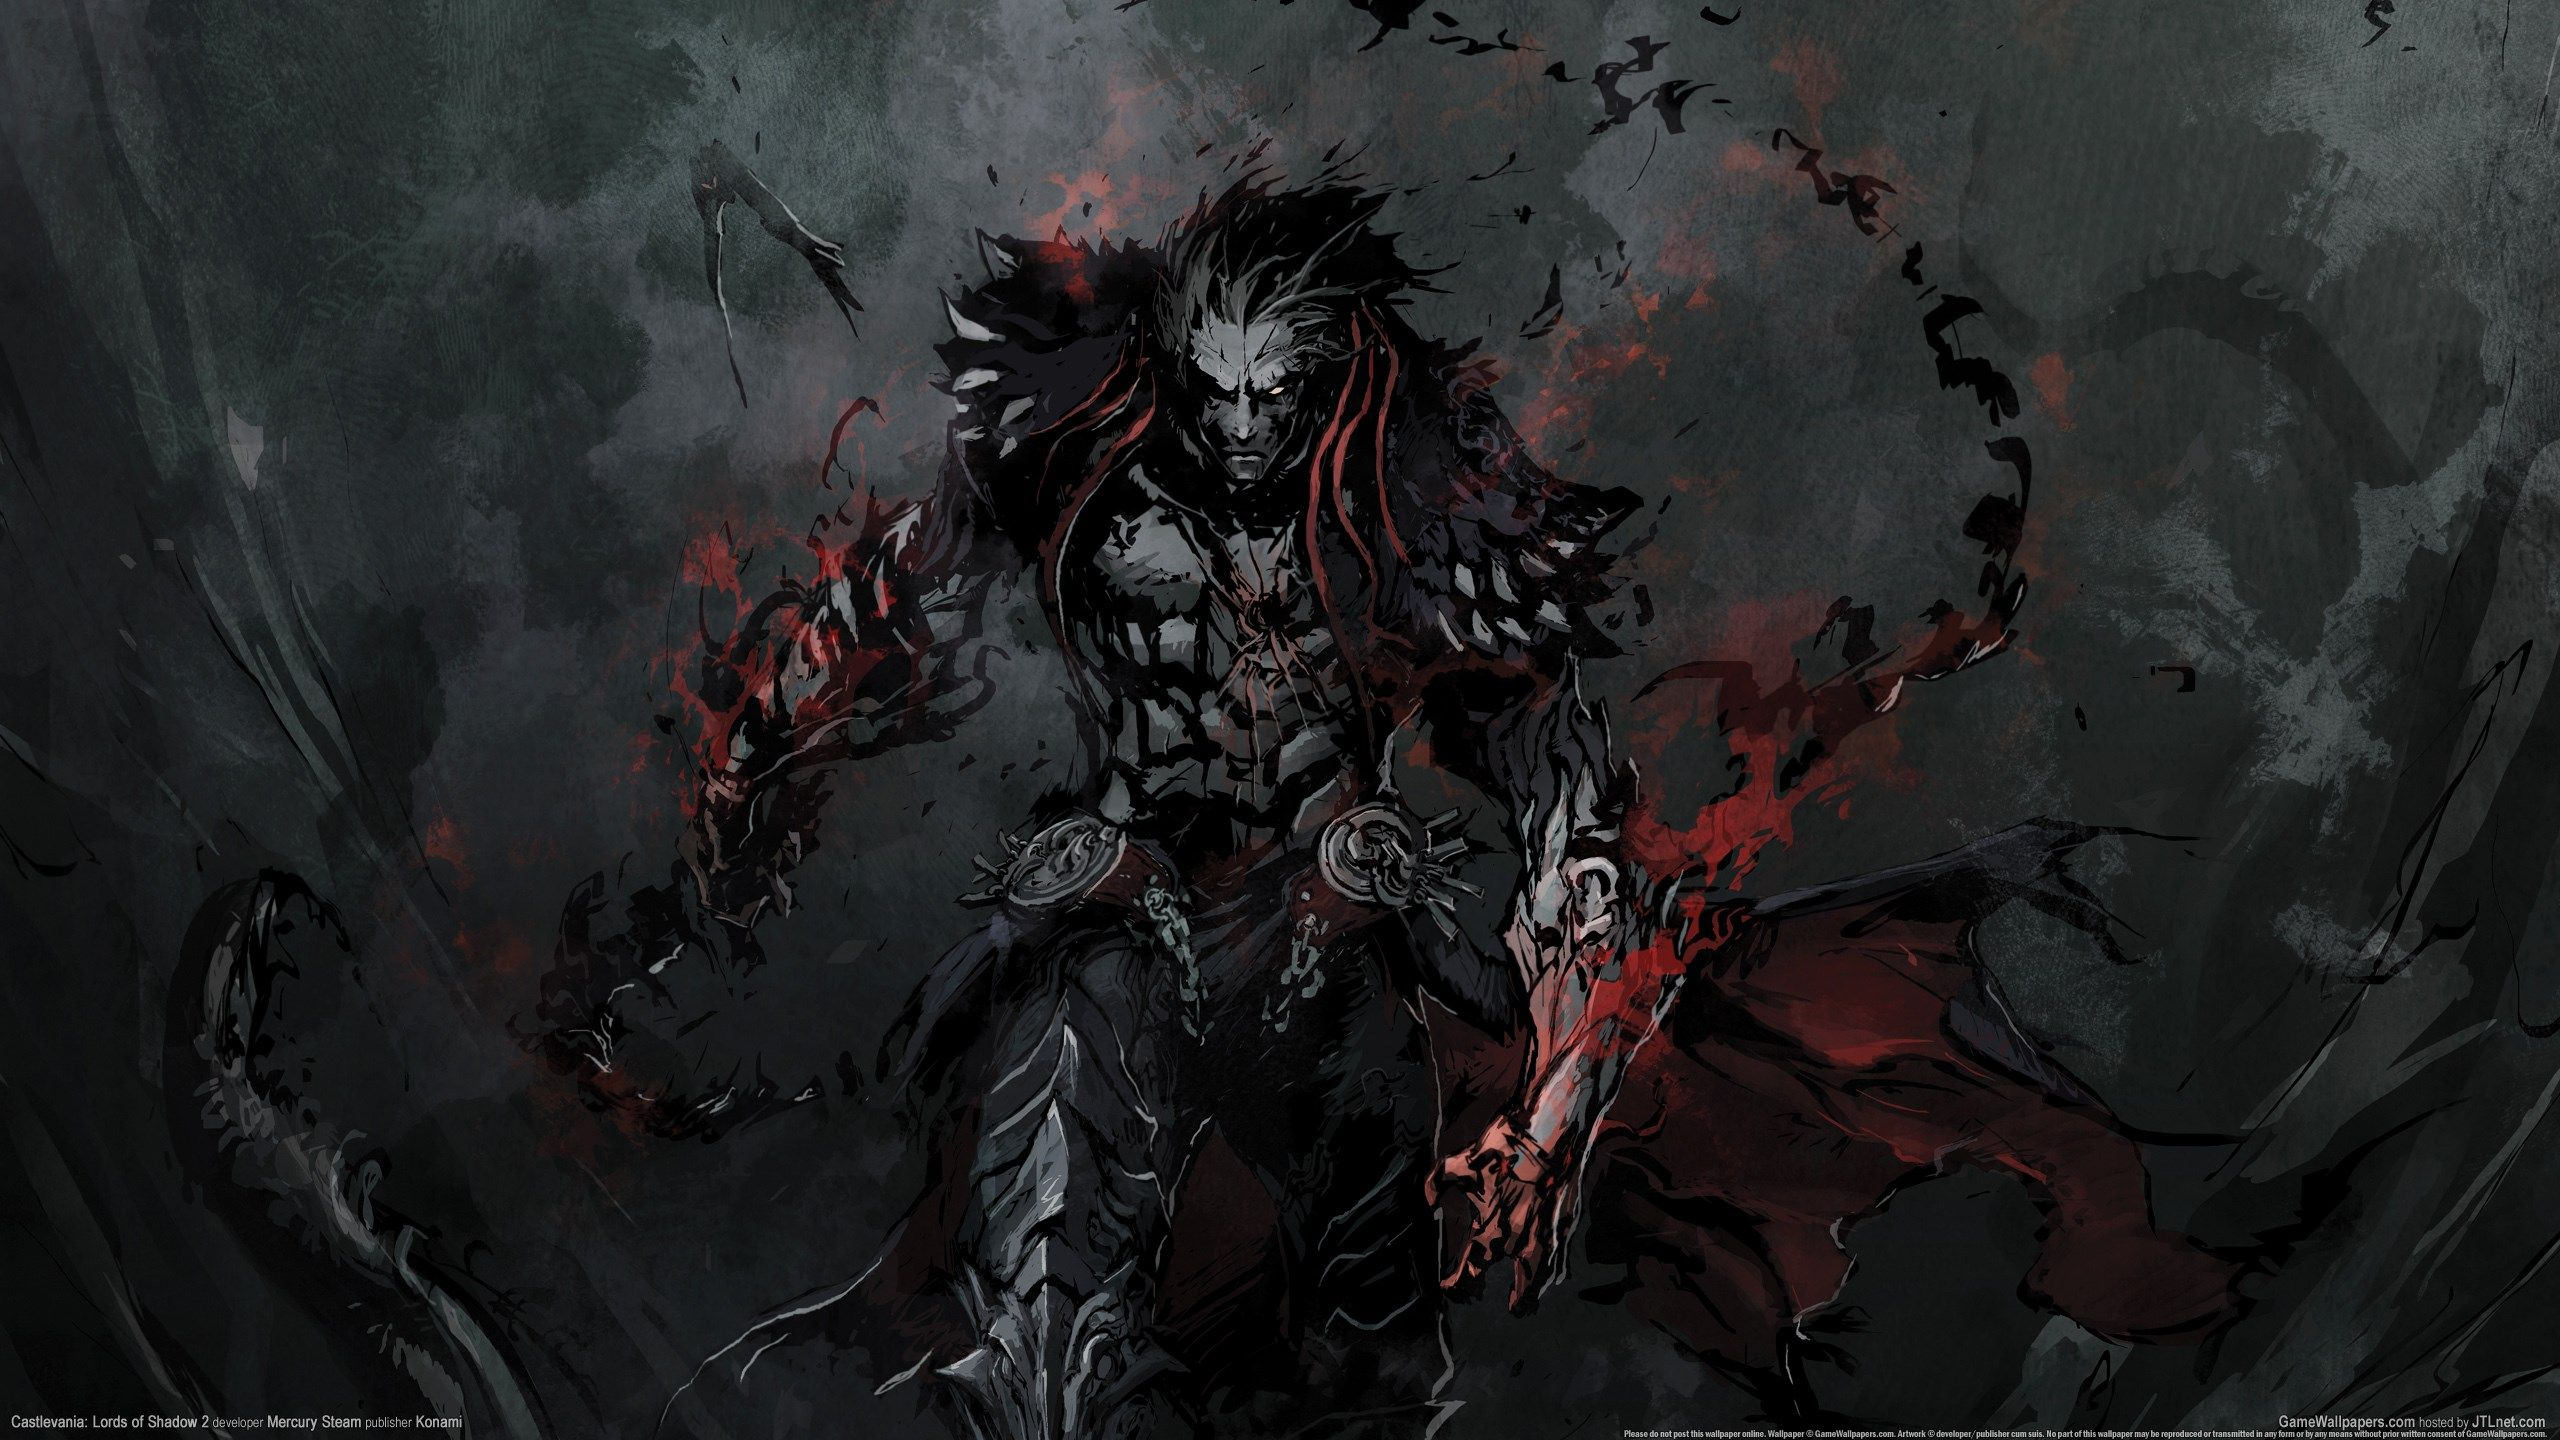 slater edwards - high resolution wallpapers widescreen castlevania